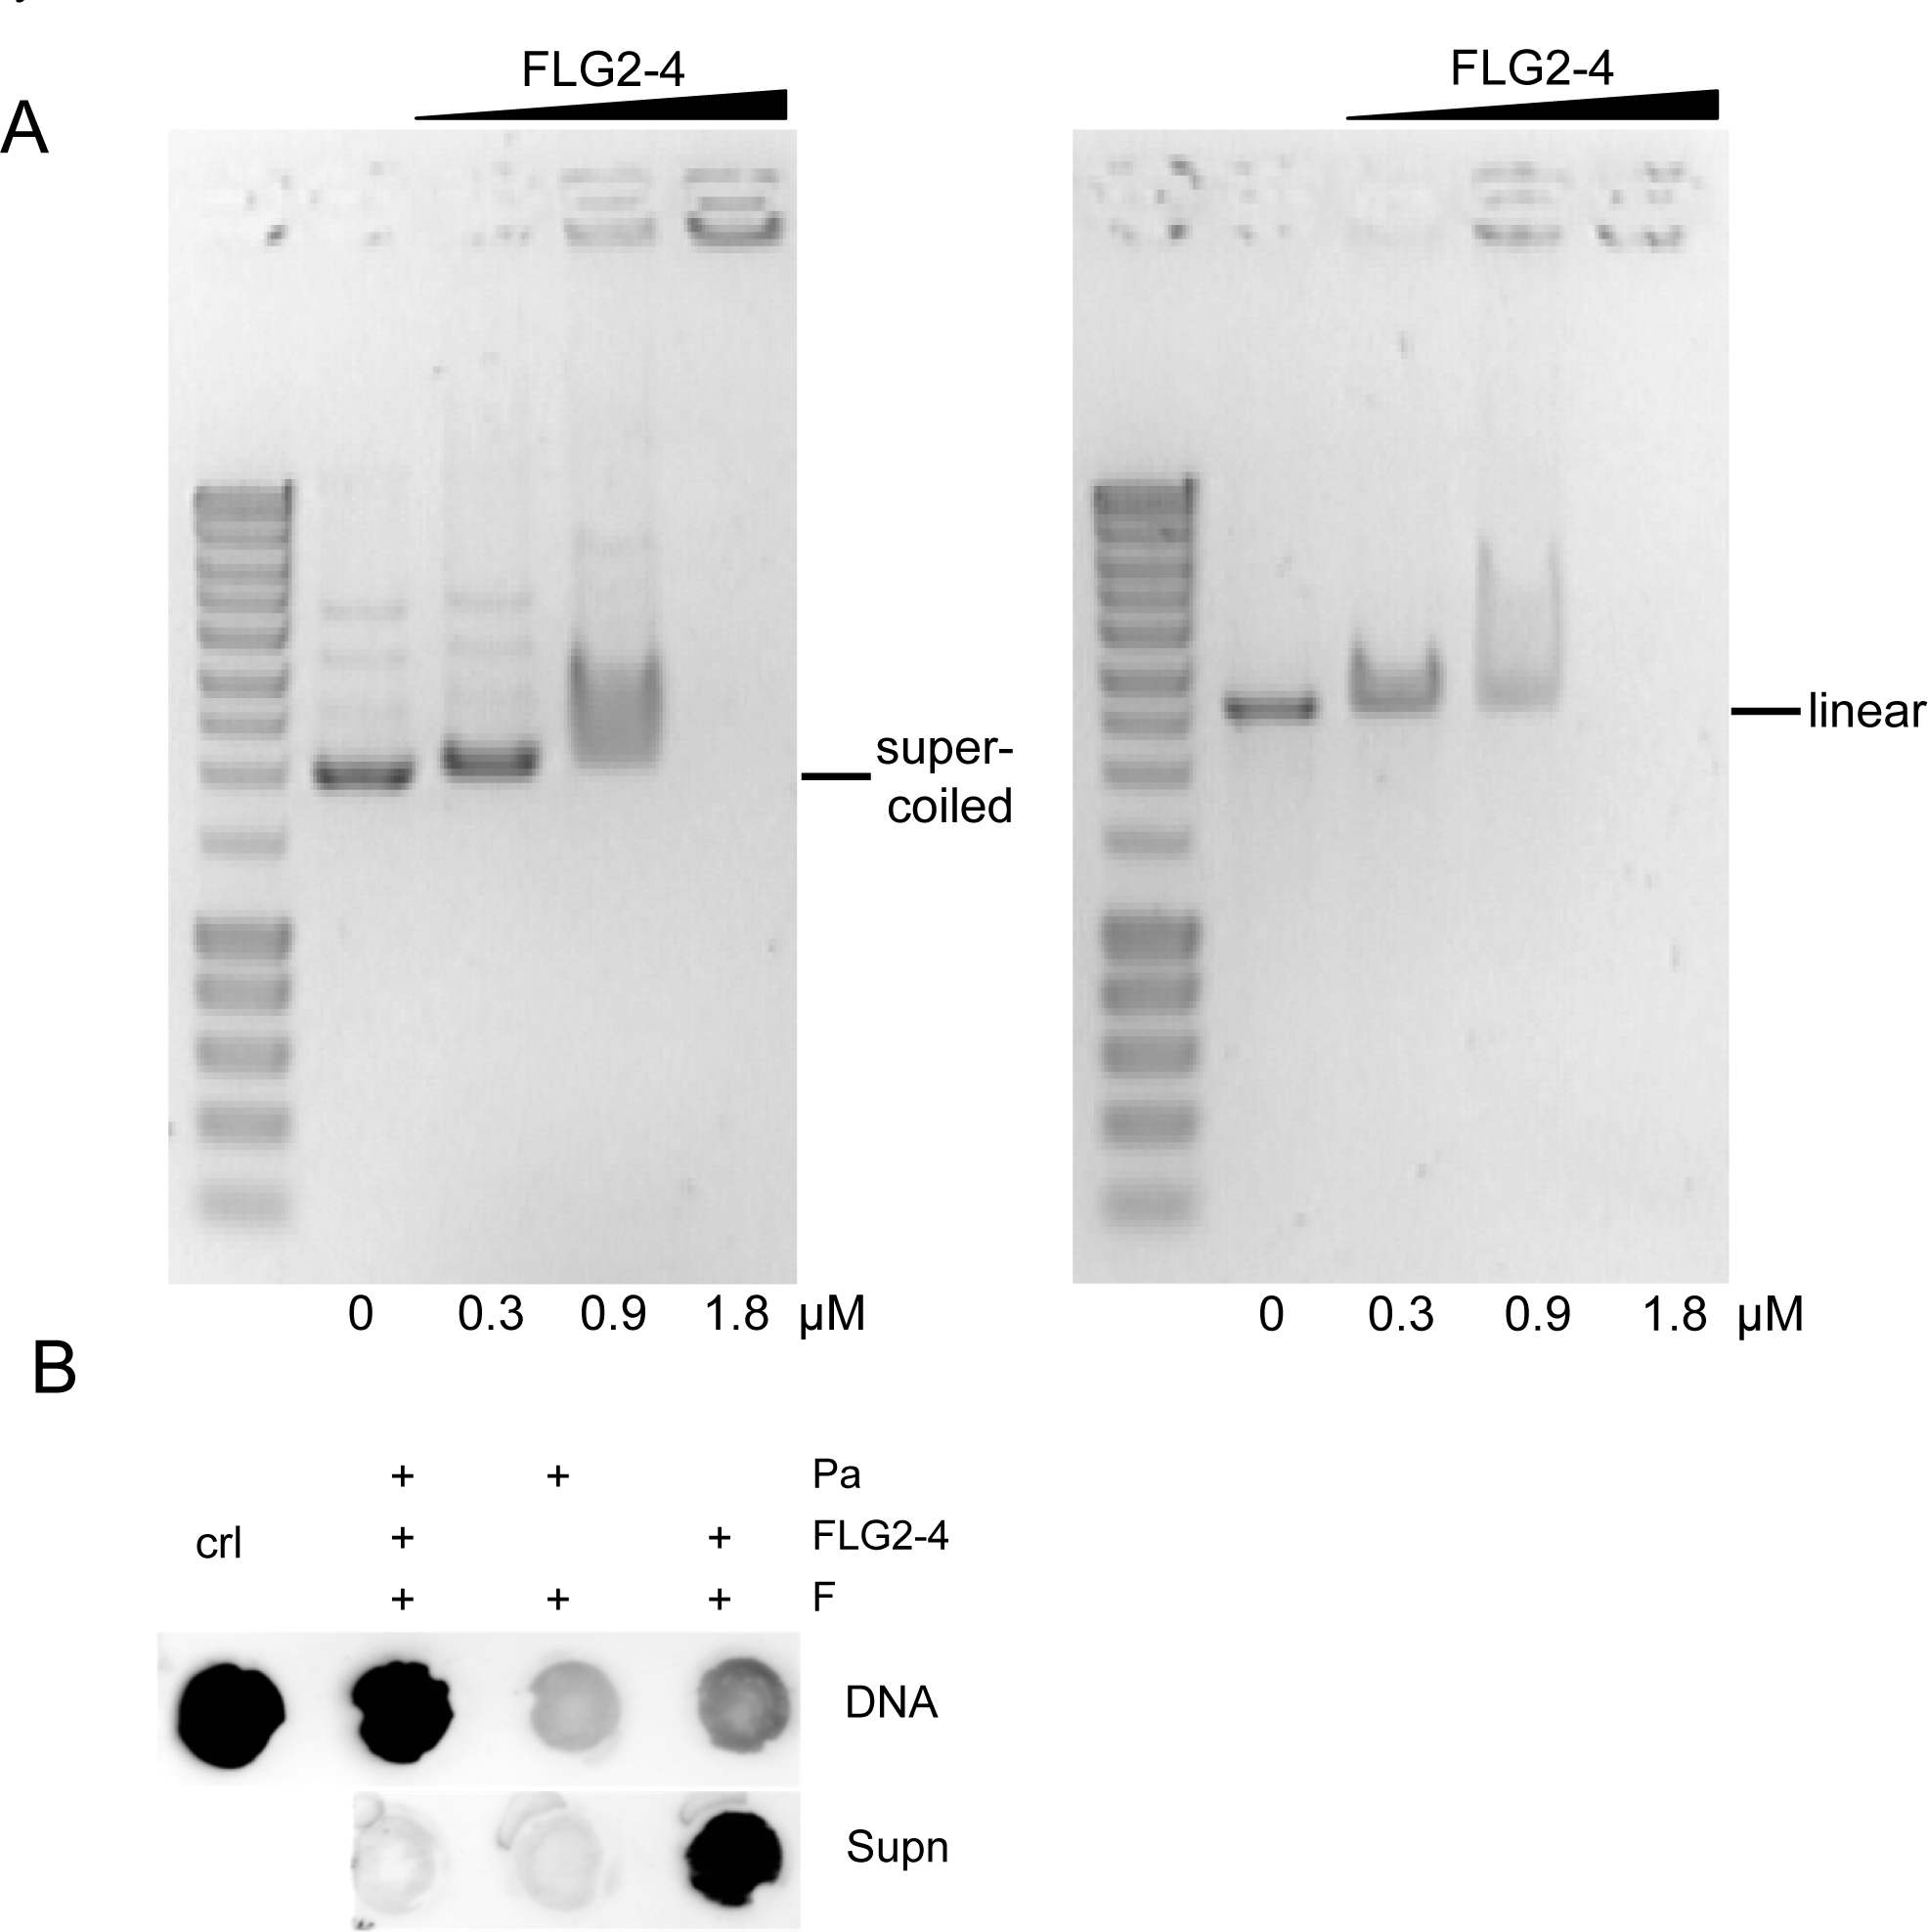 Interaction of FLG2-4 with DNA.